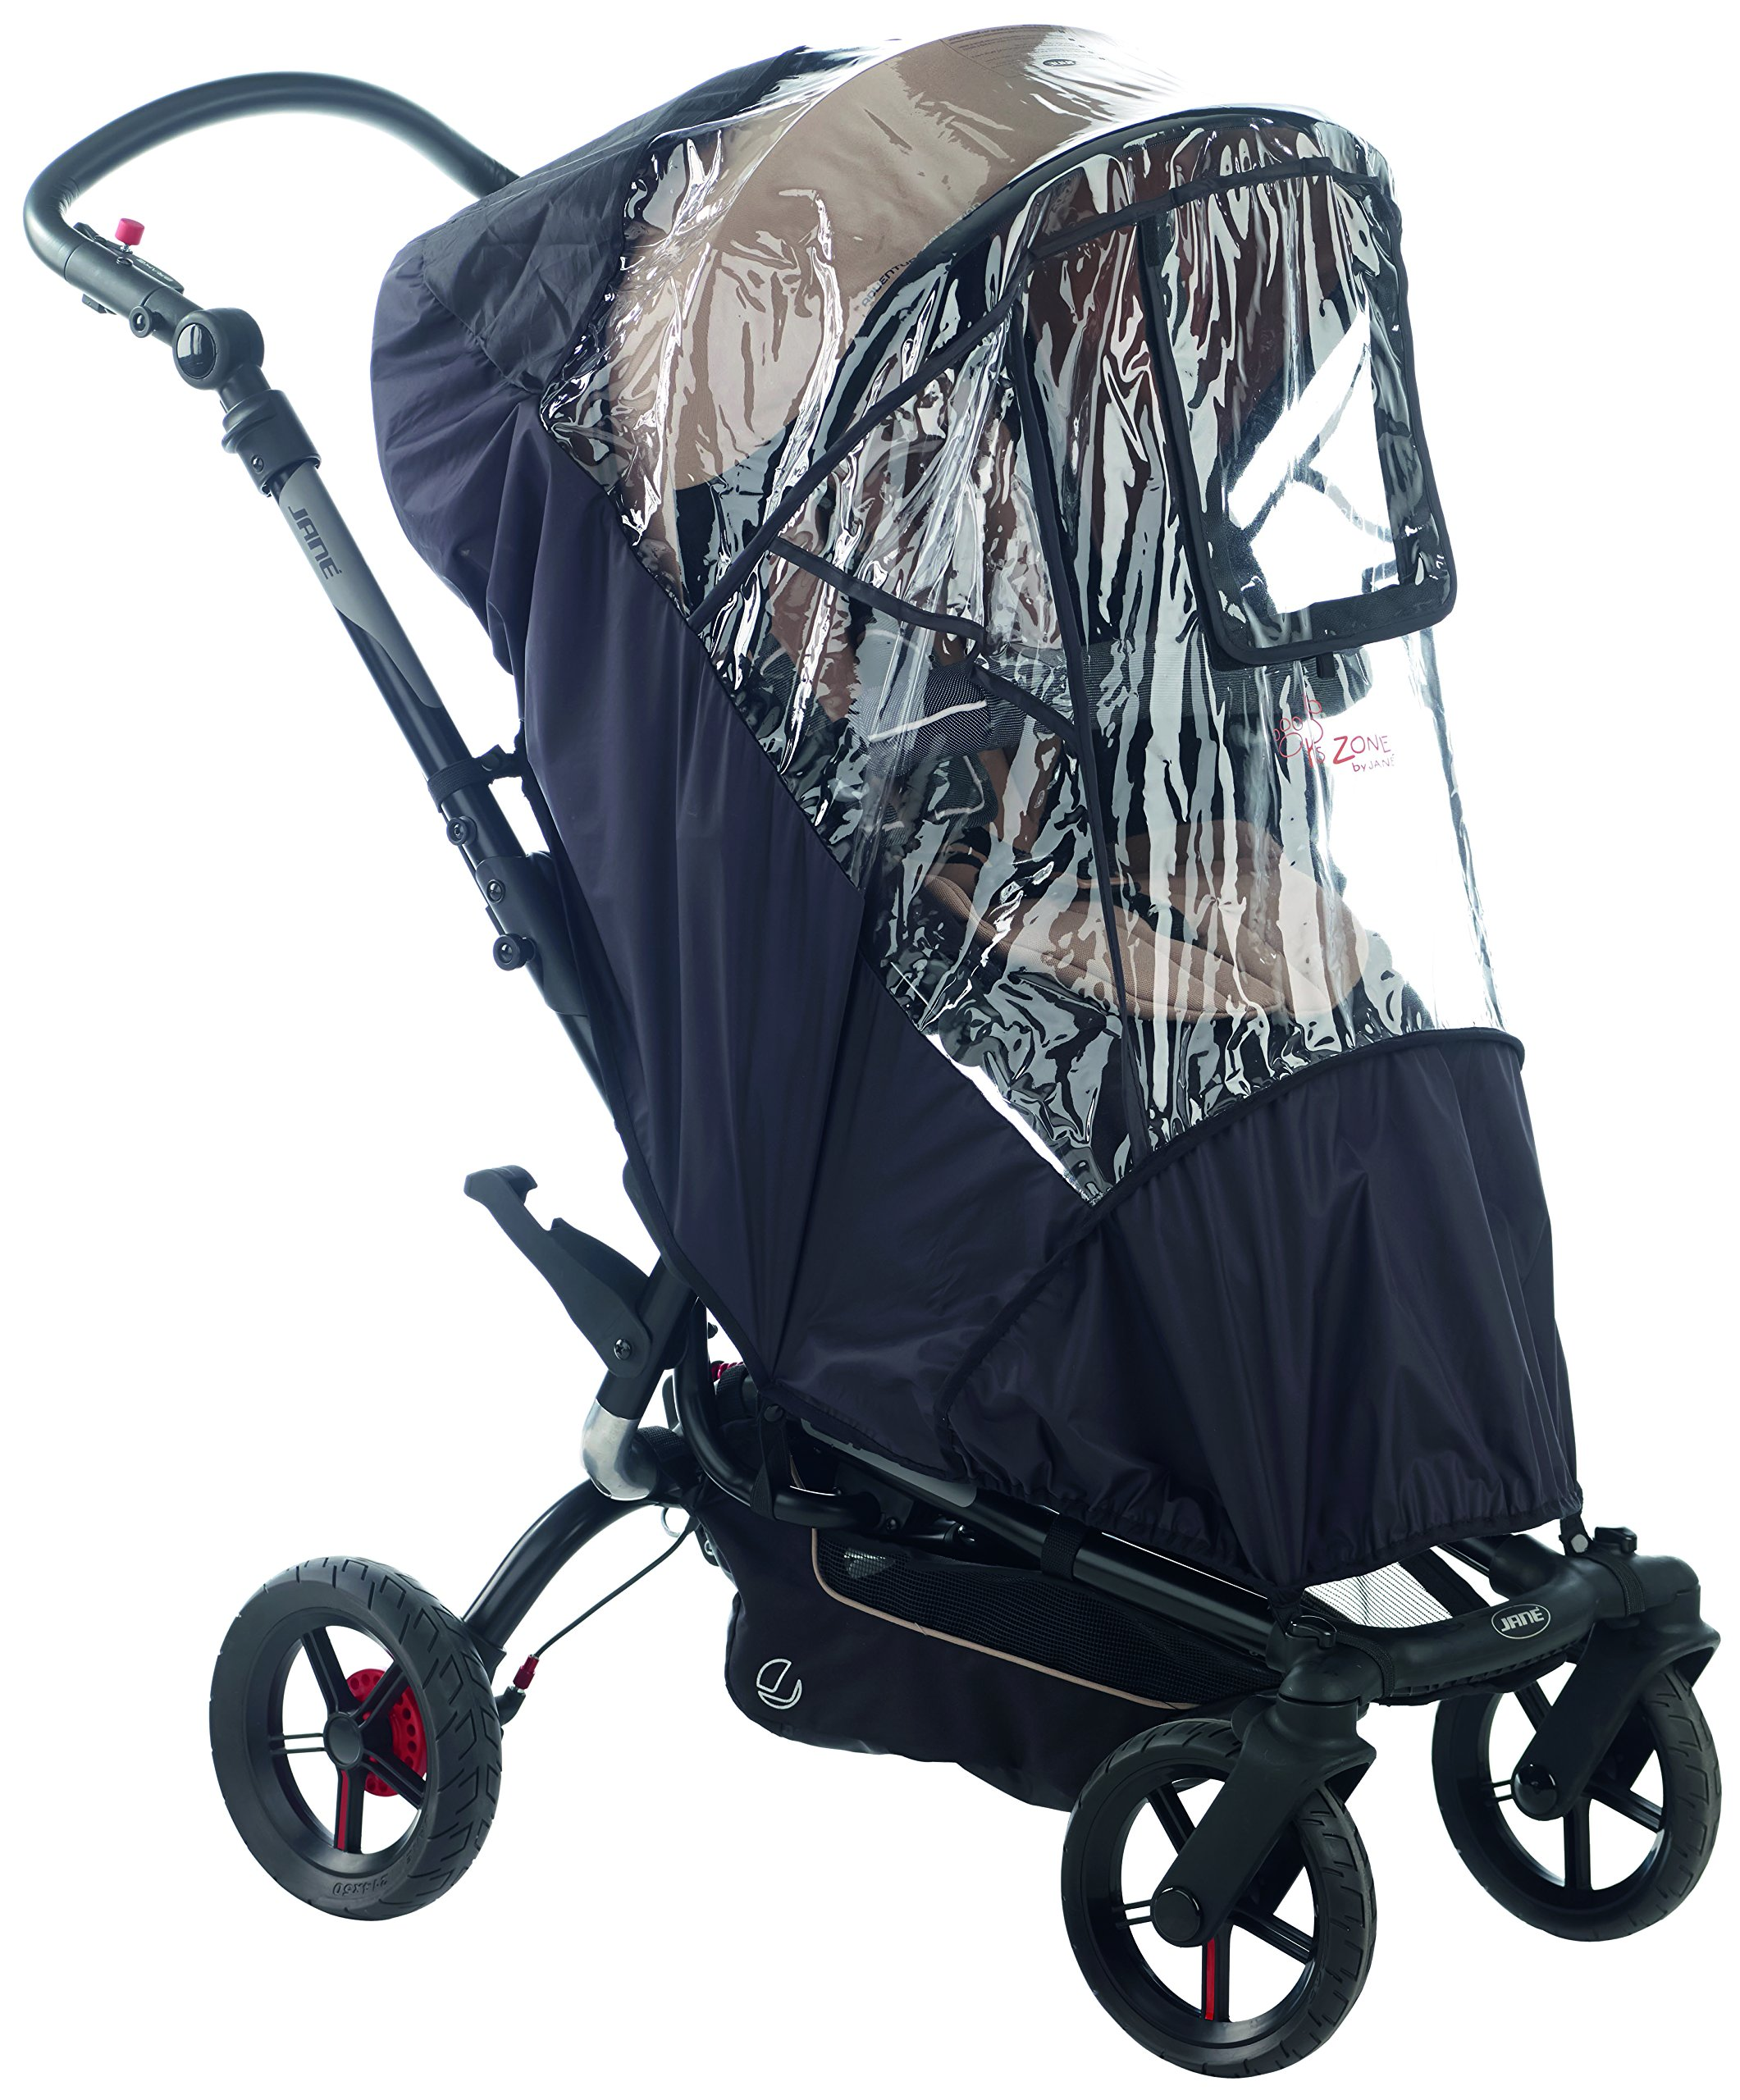 Jane Raincover for Pushchair (Unv/Nylon) Jane, Inc. Universal fitting - should fit most Pushchairs with a hood on the market Jane models we have confirmed it fits on are: Muum, Epic, Twone Single, Rider, Trider and Trider Extreme This raincover is a quality accessory that is reinforced to prolong its life 2